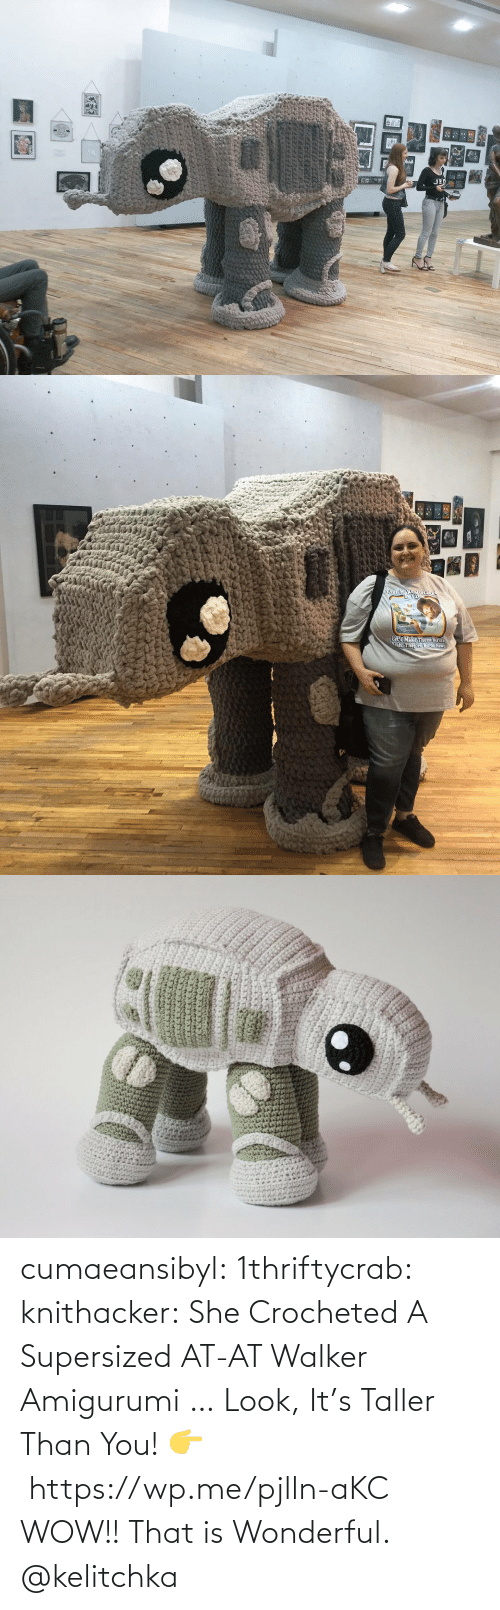 she: cumaeansibyl: 1thriftycrab:  knithacker:  She Crocheted A Supersized AT-AT Walker Amigurumi … Look, It's Taller Than You! 👉 https://wp.me/pjlln-aKC  WOW!! That is Wonderful.   @kelitchka